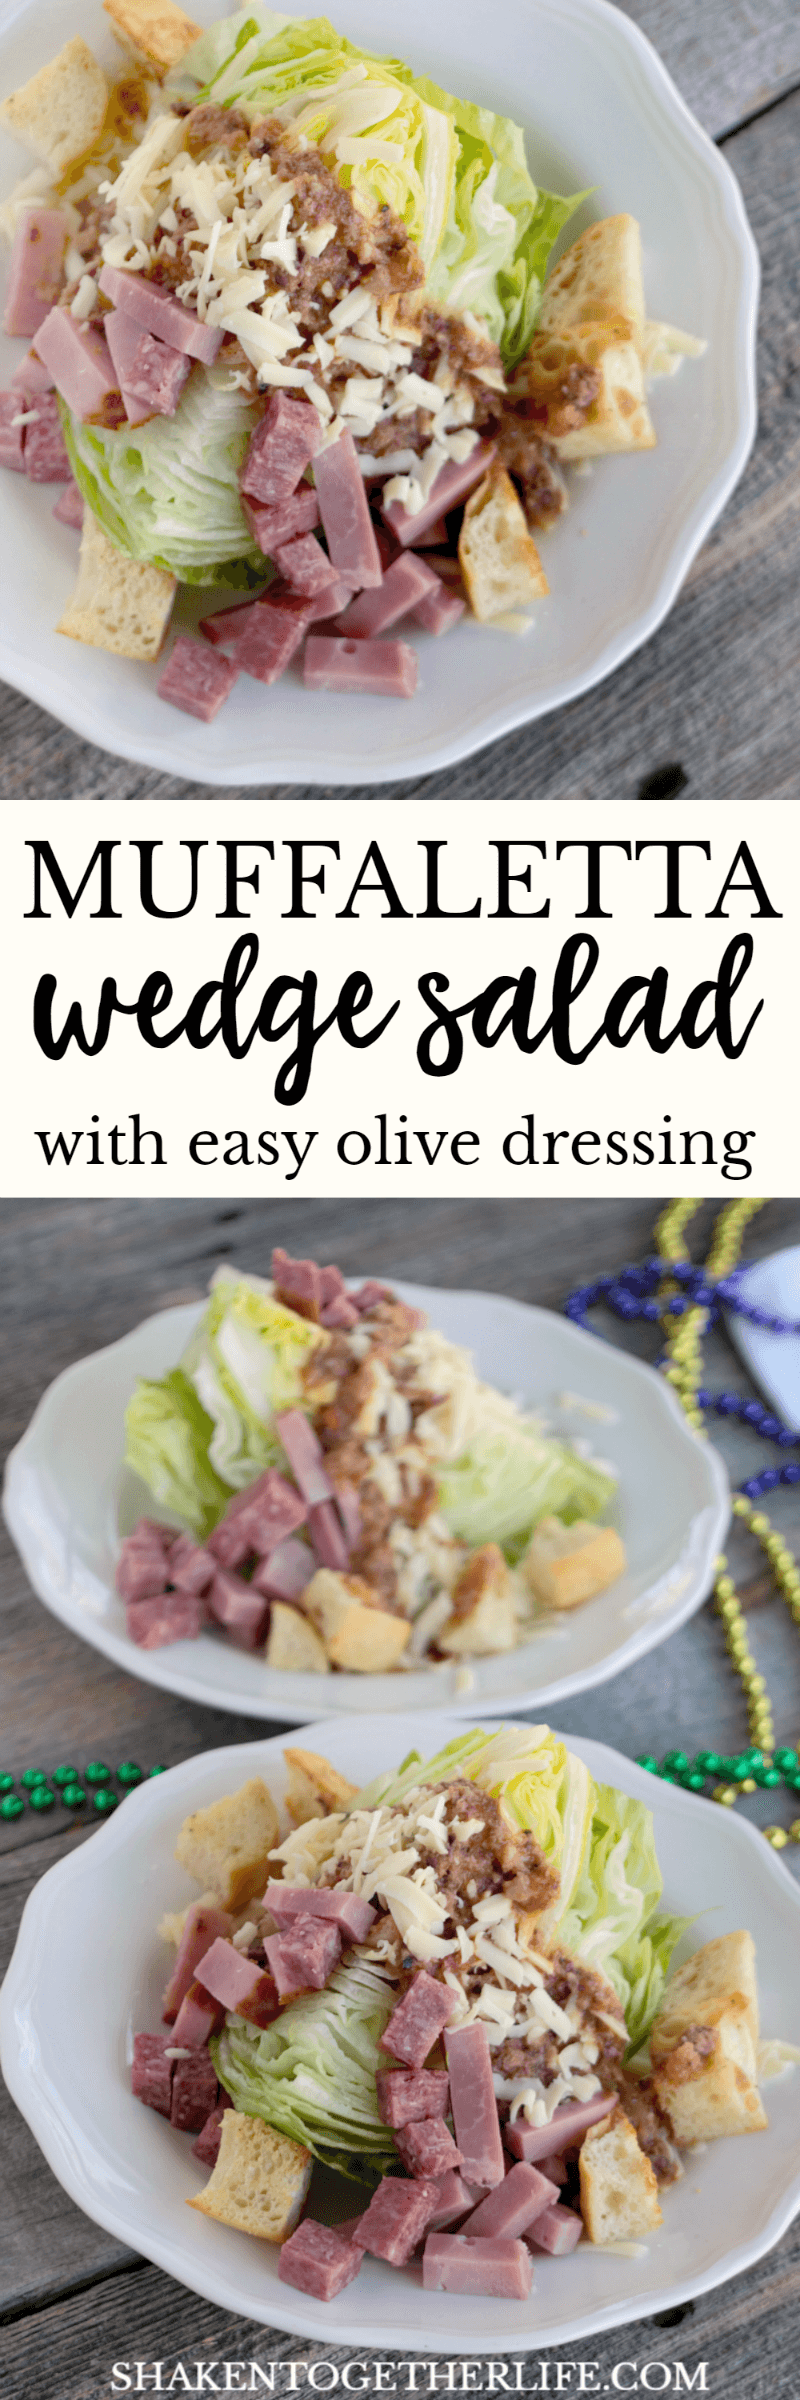 Channel the flavors of a tradition New Orleans sandwich with our Muffaletta Wedge Salad! Meats, cheese and homemade croutons partner with an easy olive dressing for this hearty side salad!